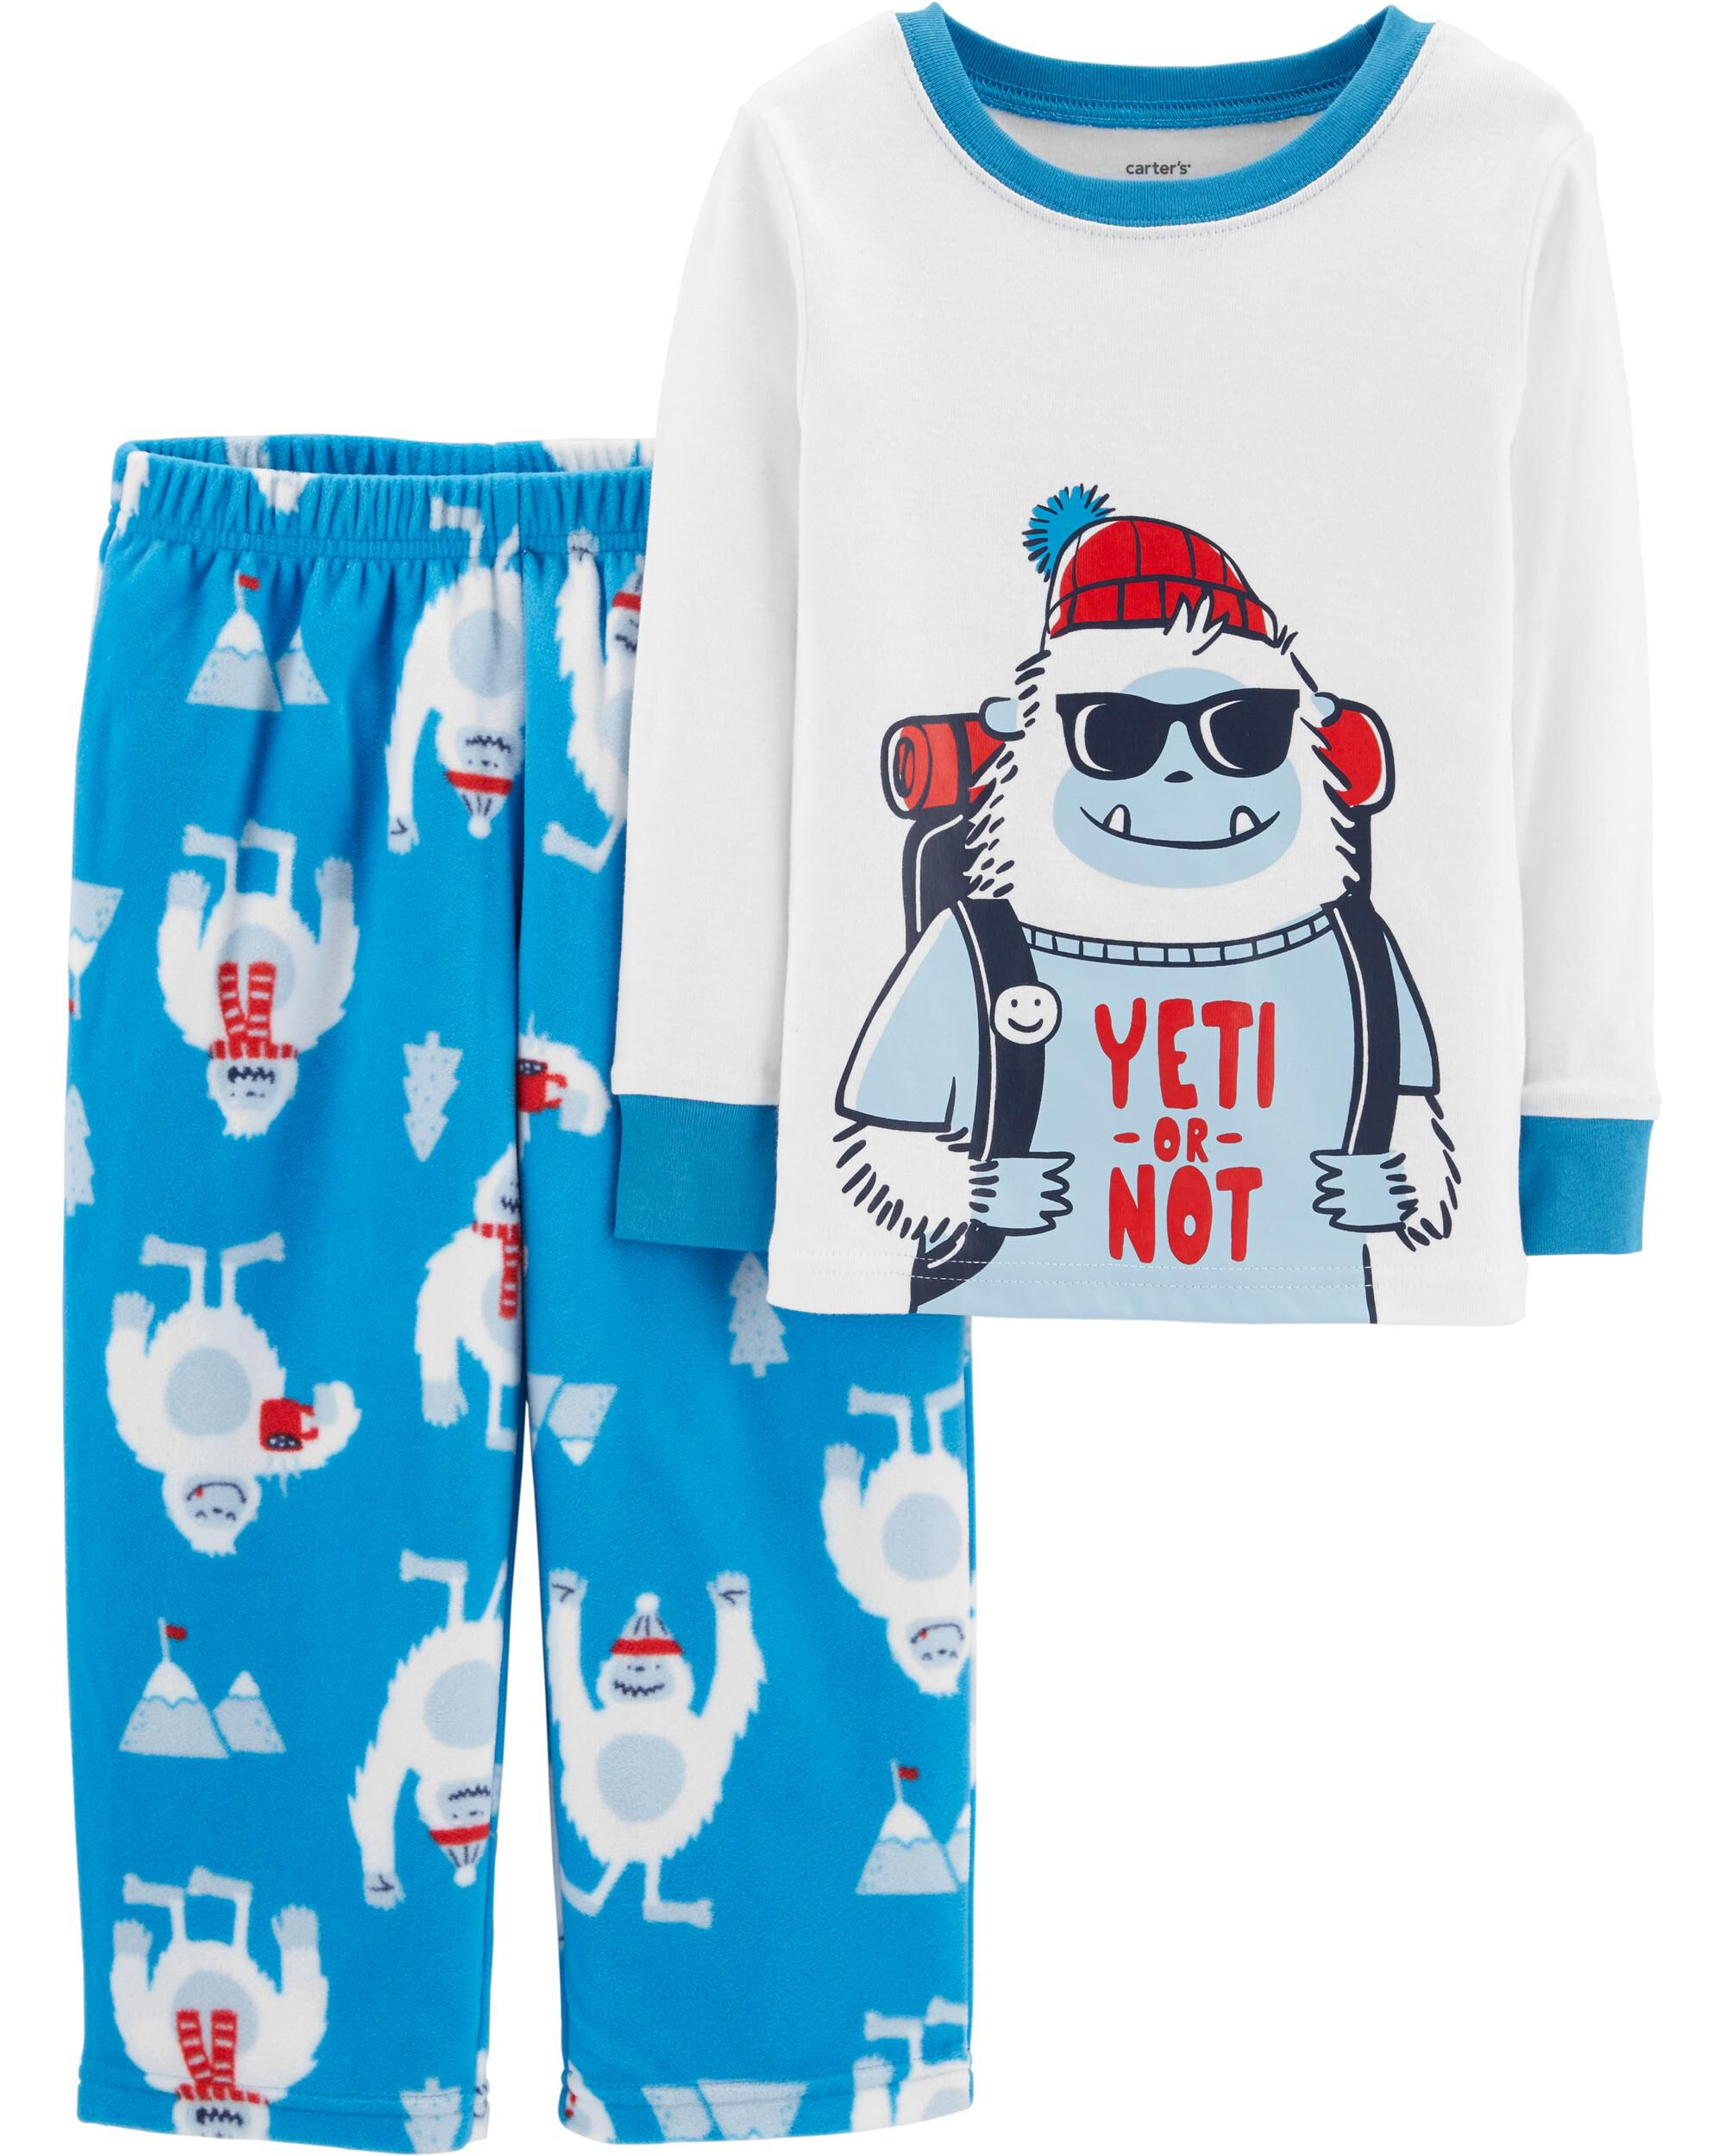 2 piece yeti cotton fleece pjs carters com